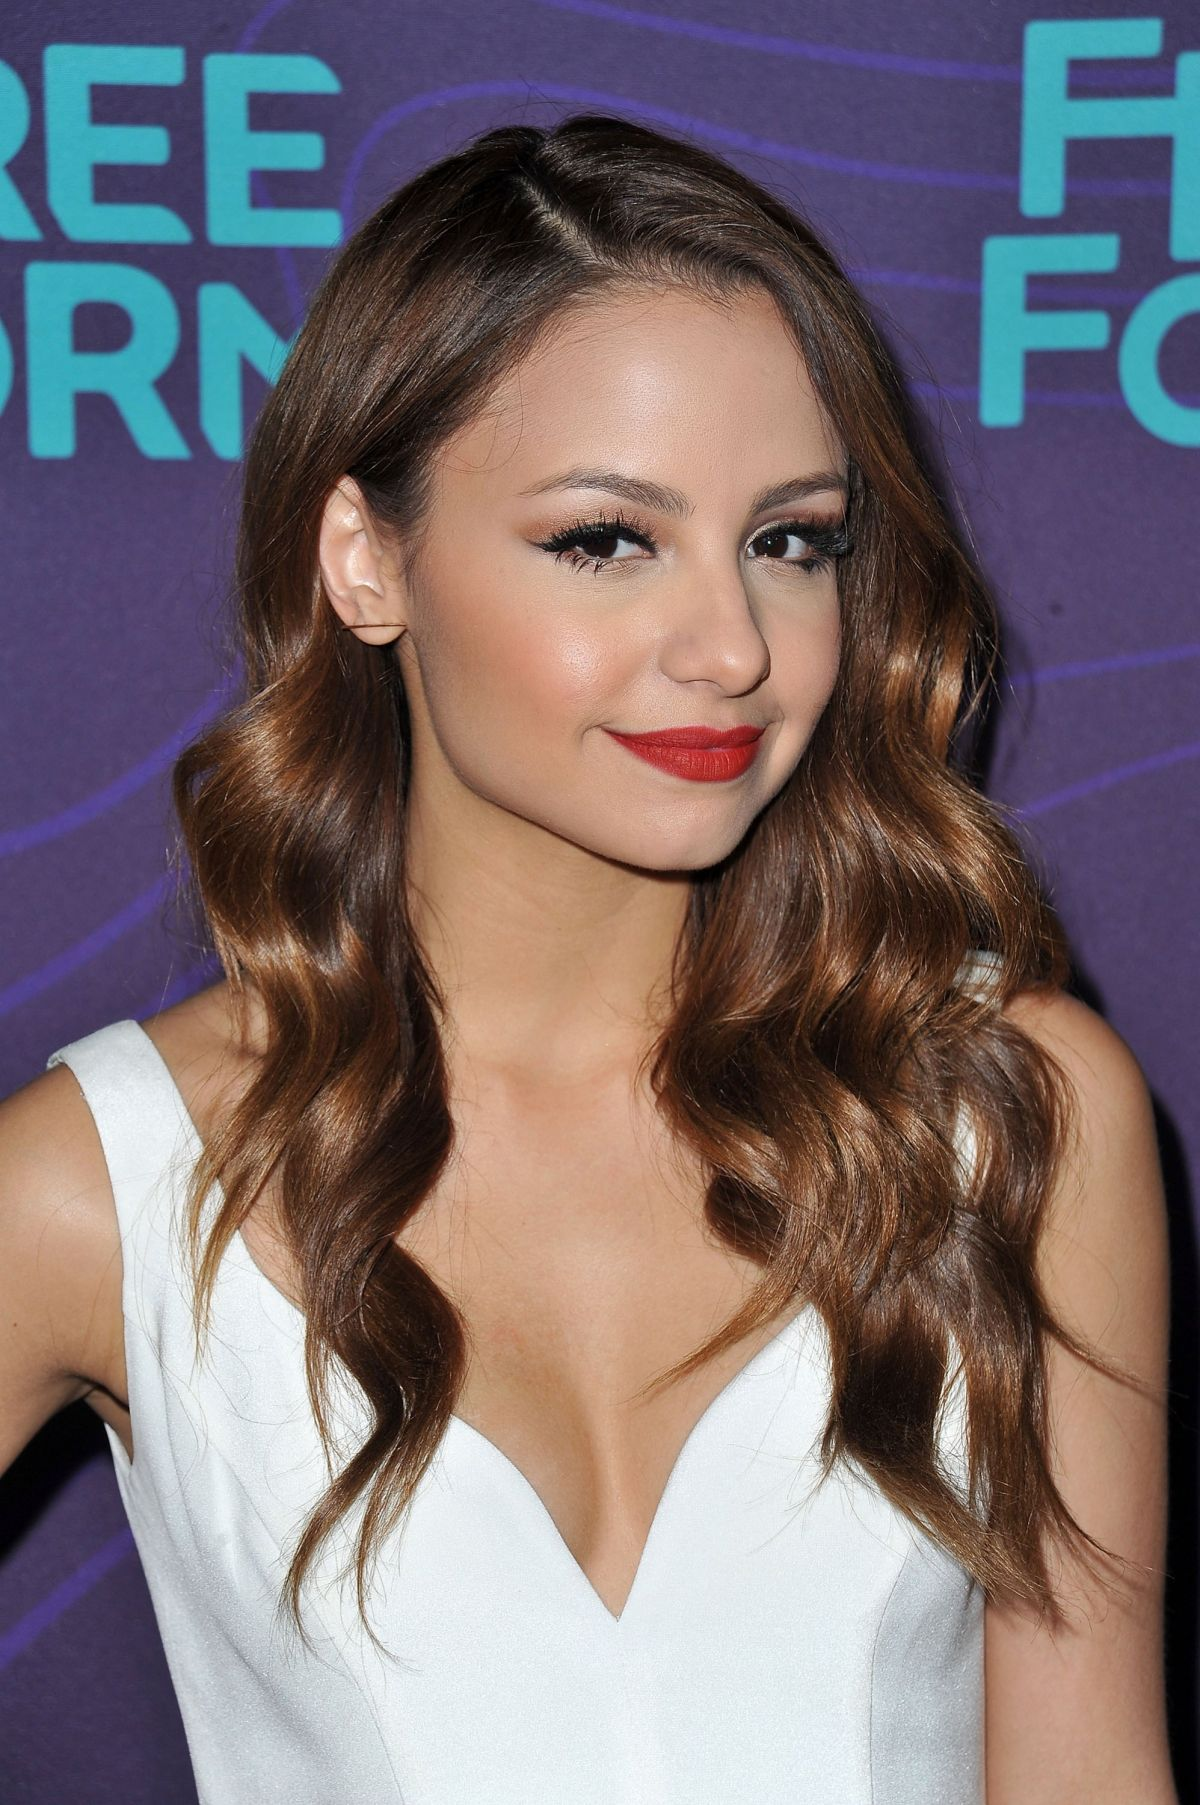 AIMEE CARRERO at ABC 2016 Winter TCA Tour in Pasadena 001/09/2016